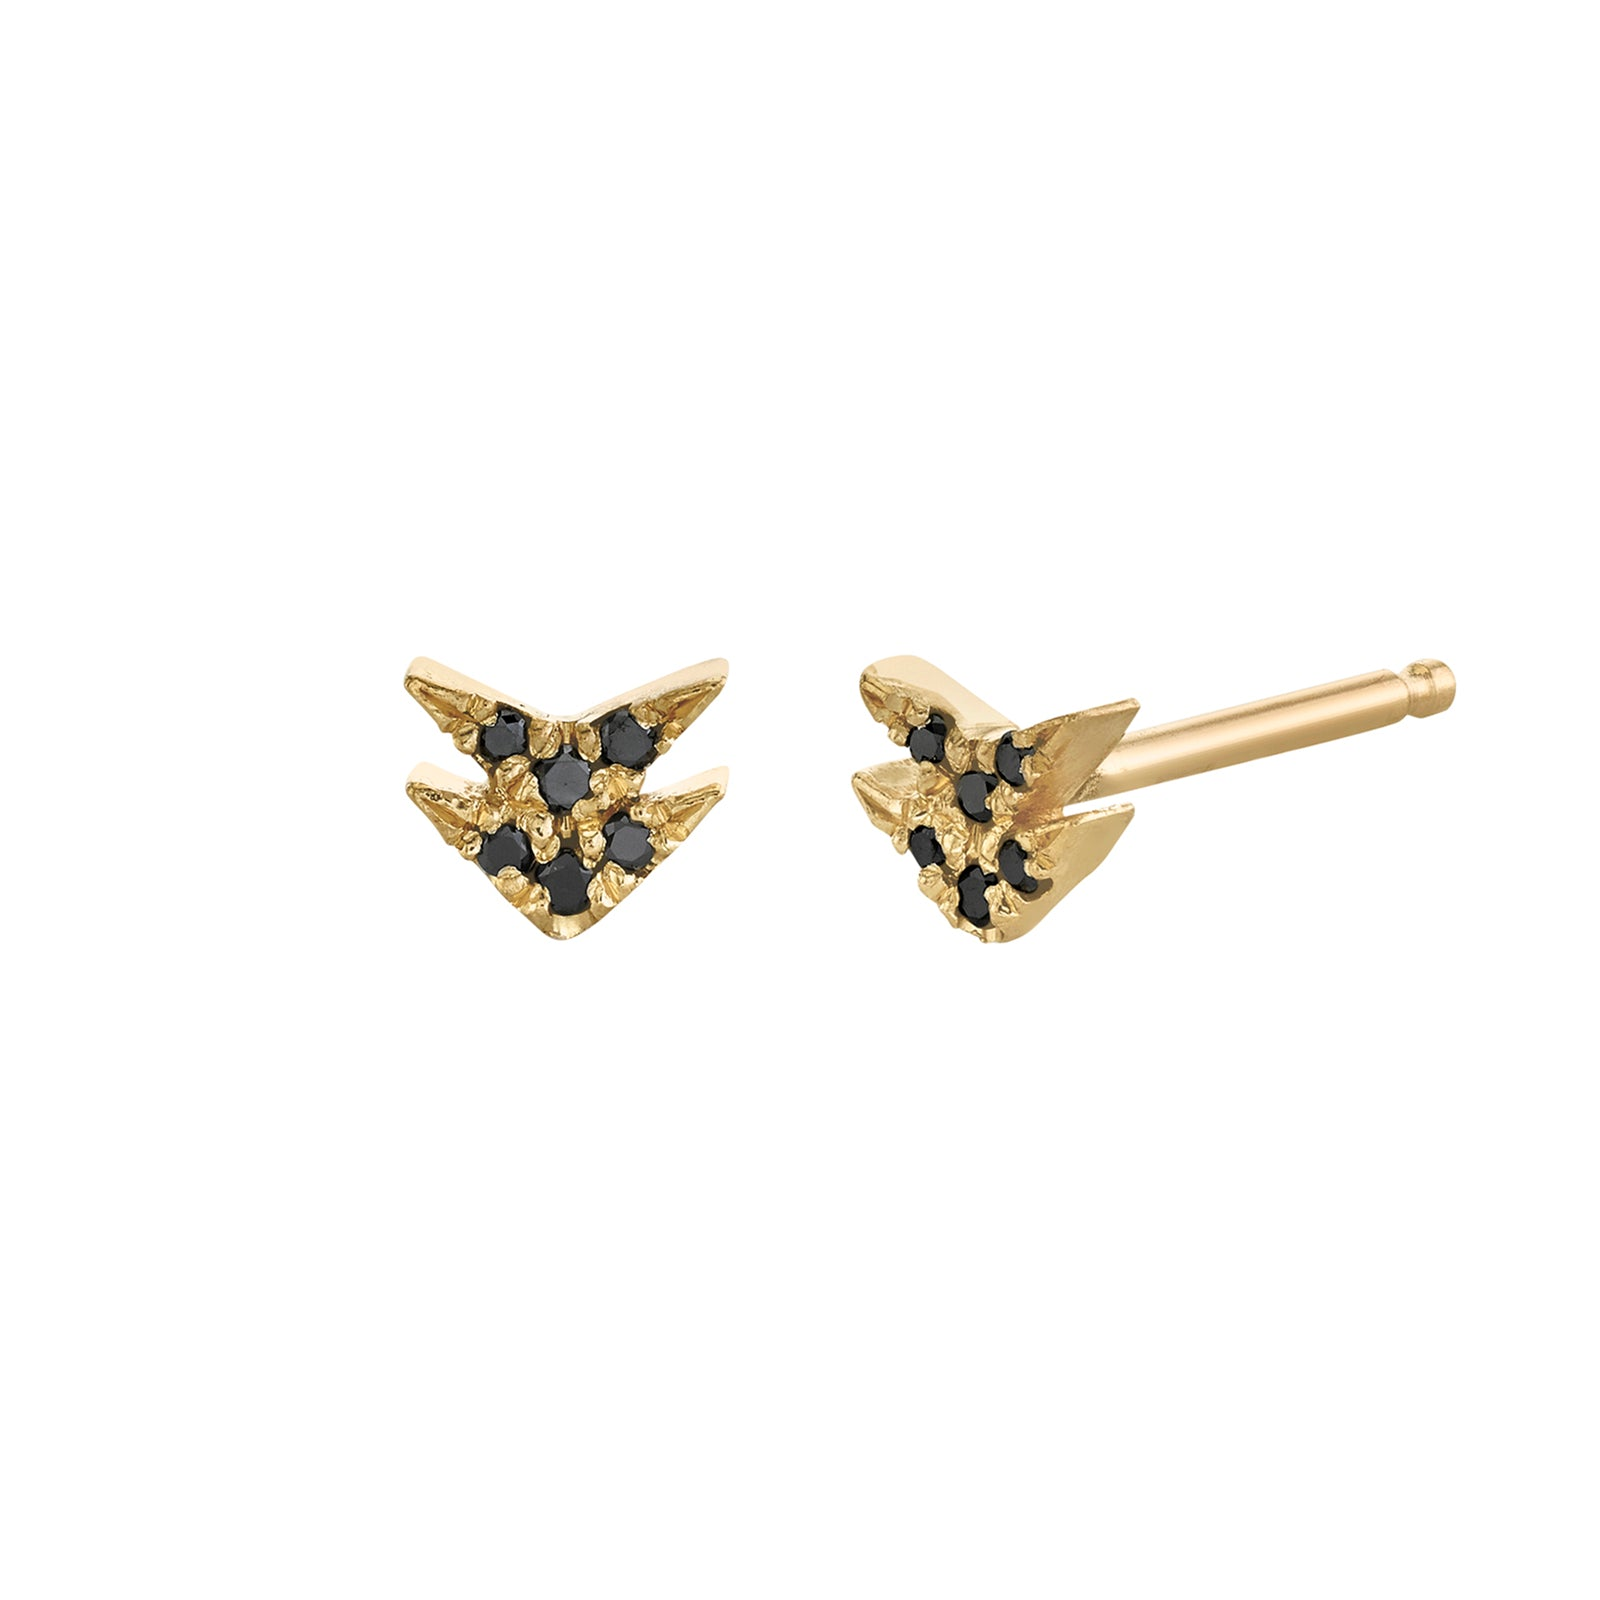 Lizzie Mandler Double Black Diamond Pave V Stud - Yellow Gold - Earrings - Broken English Jewelry